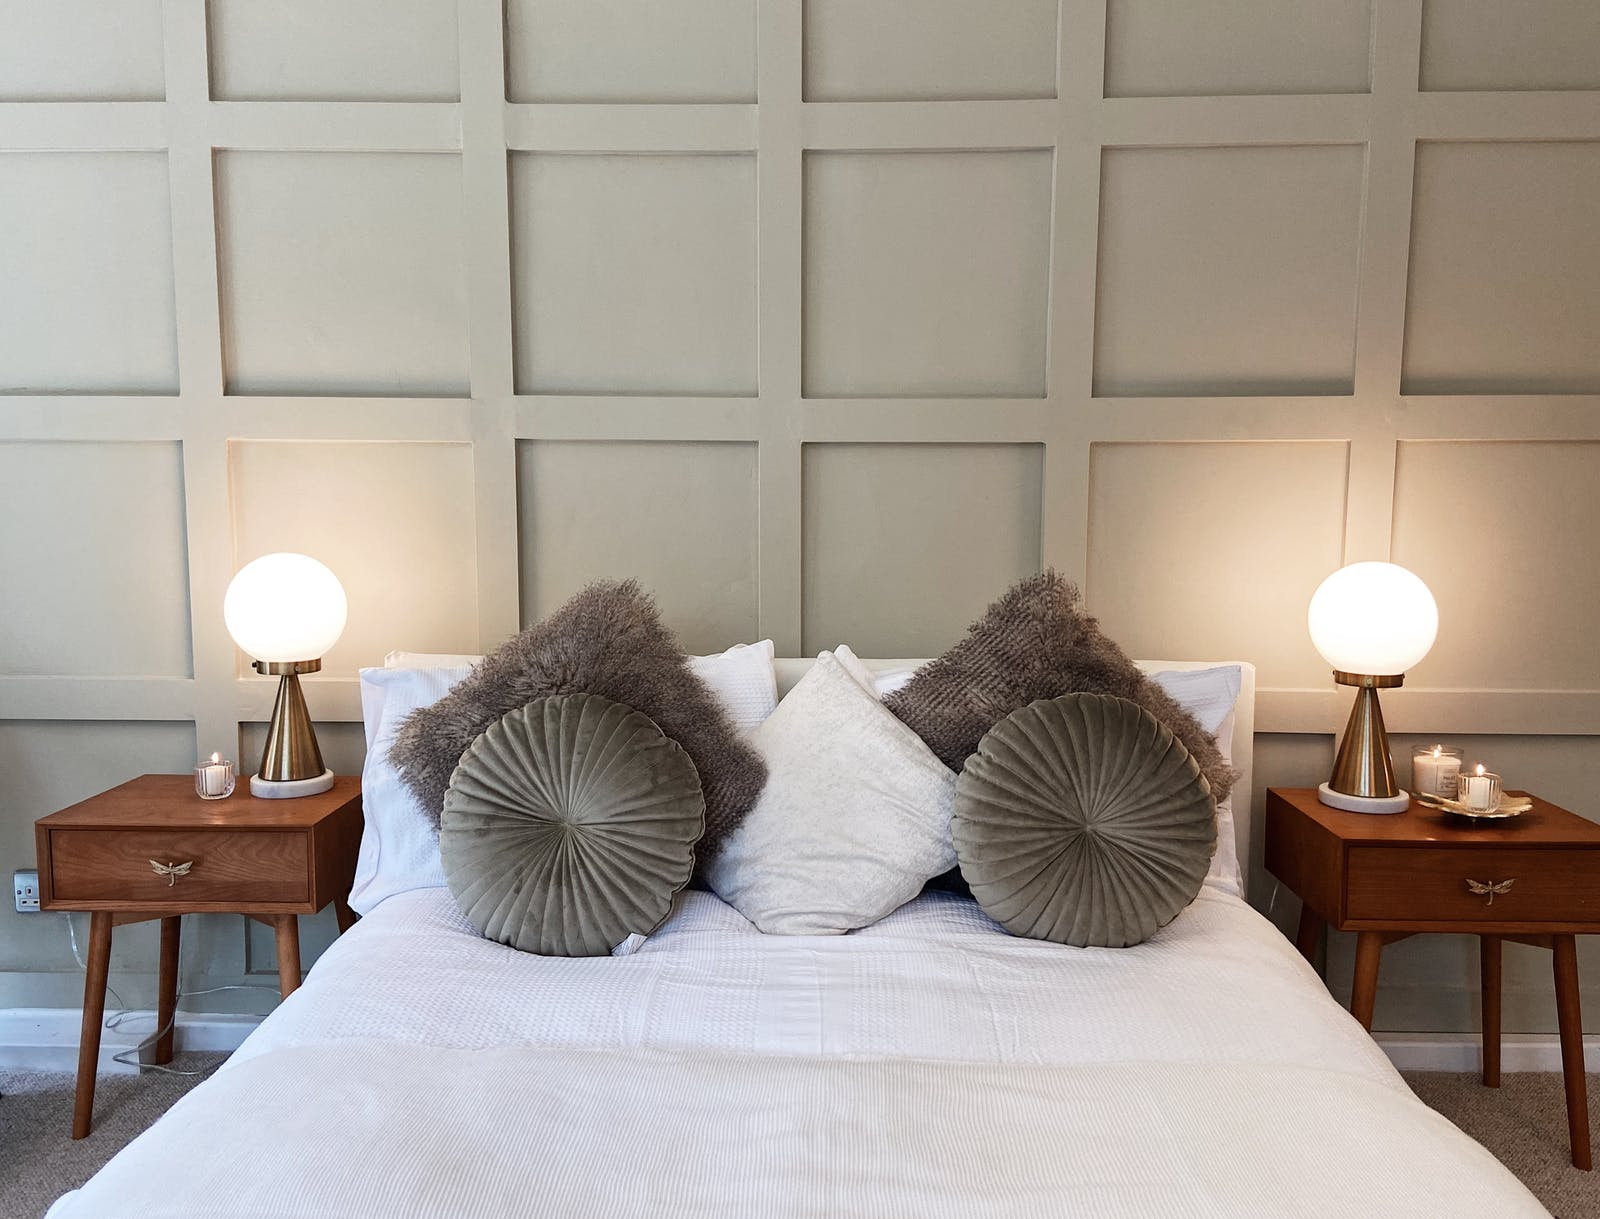 DAOB close up of krystal's panelling headboard with symmetrical pillow arrangement on bed